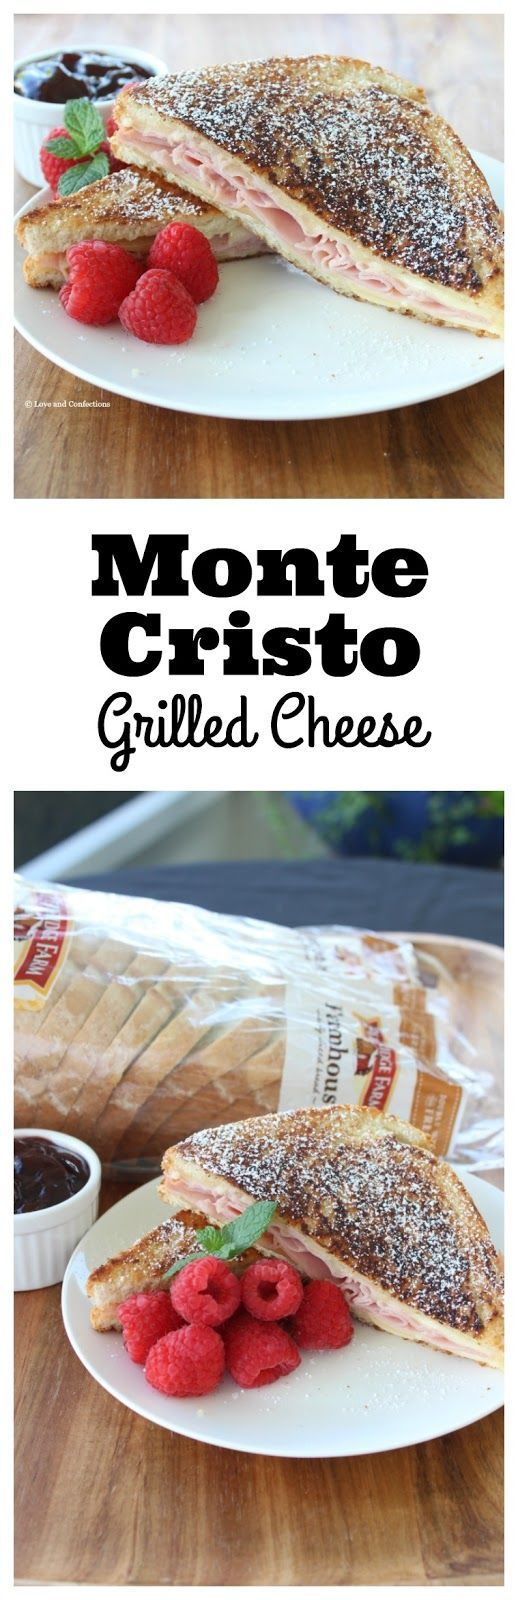 Monte Cristo Grilled Cheese from http://LoveandConfections.com #SandwichWithTheBest AD /pepperidgefarm/